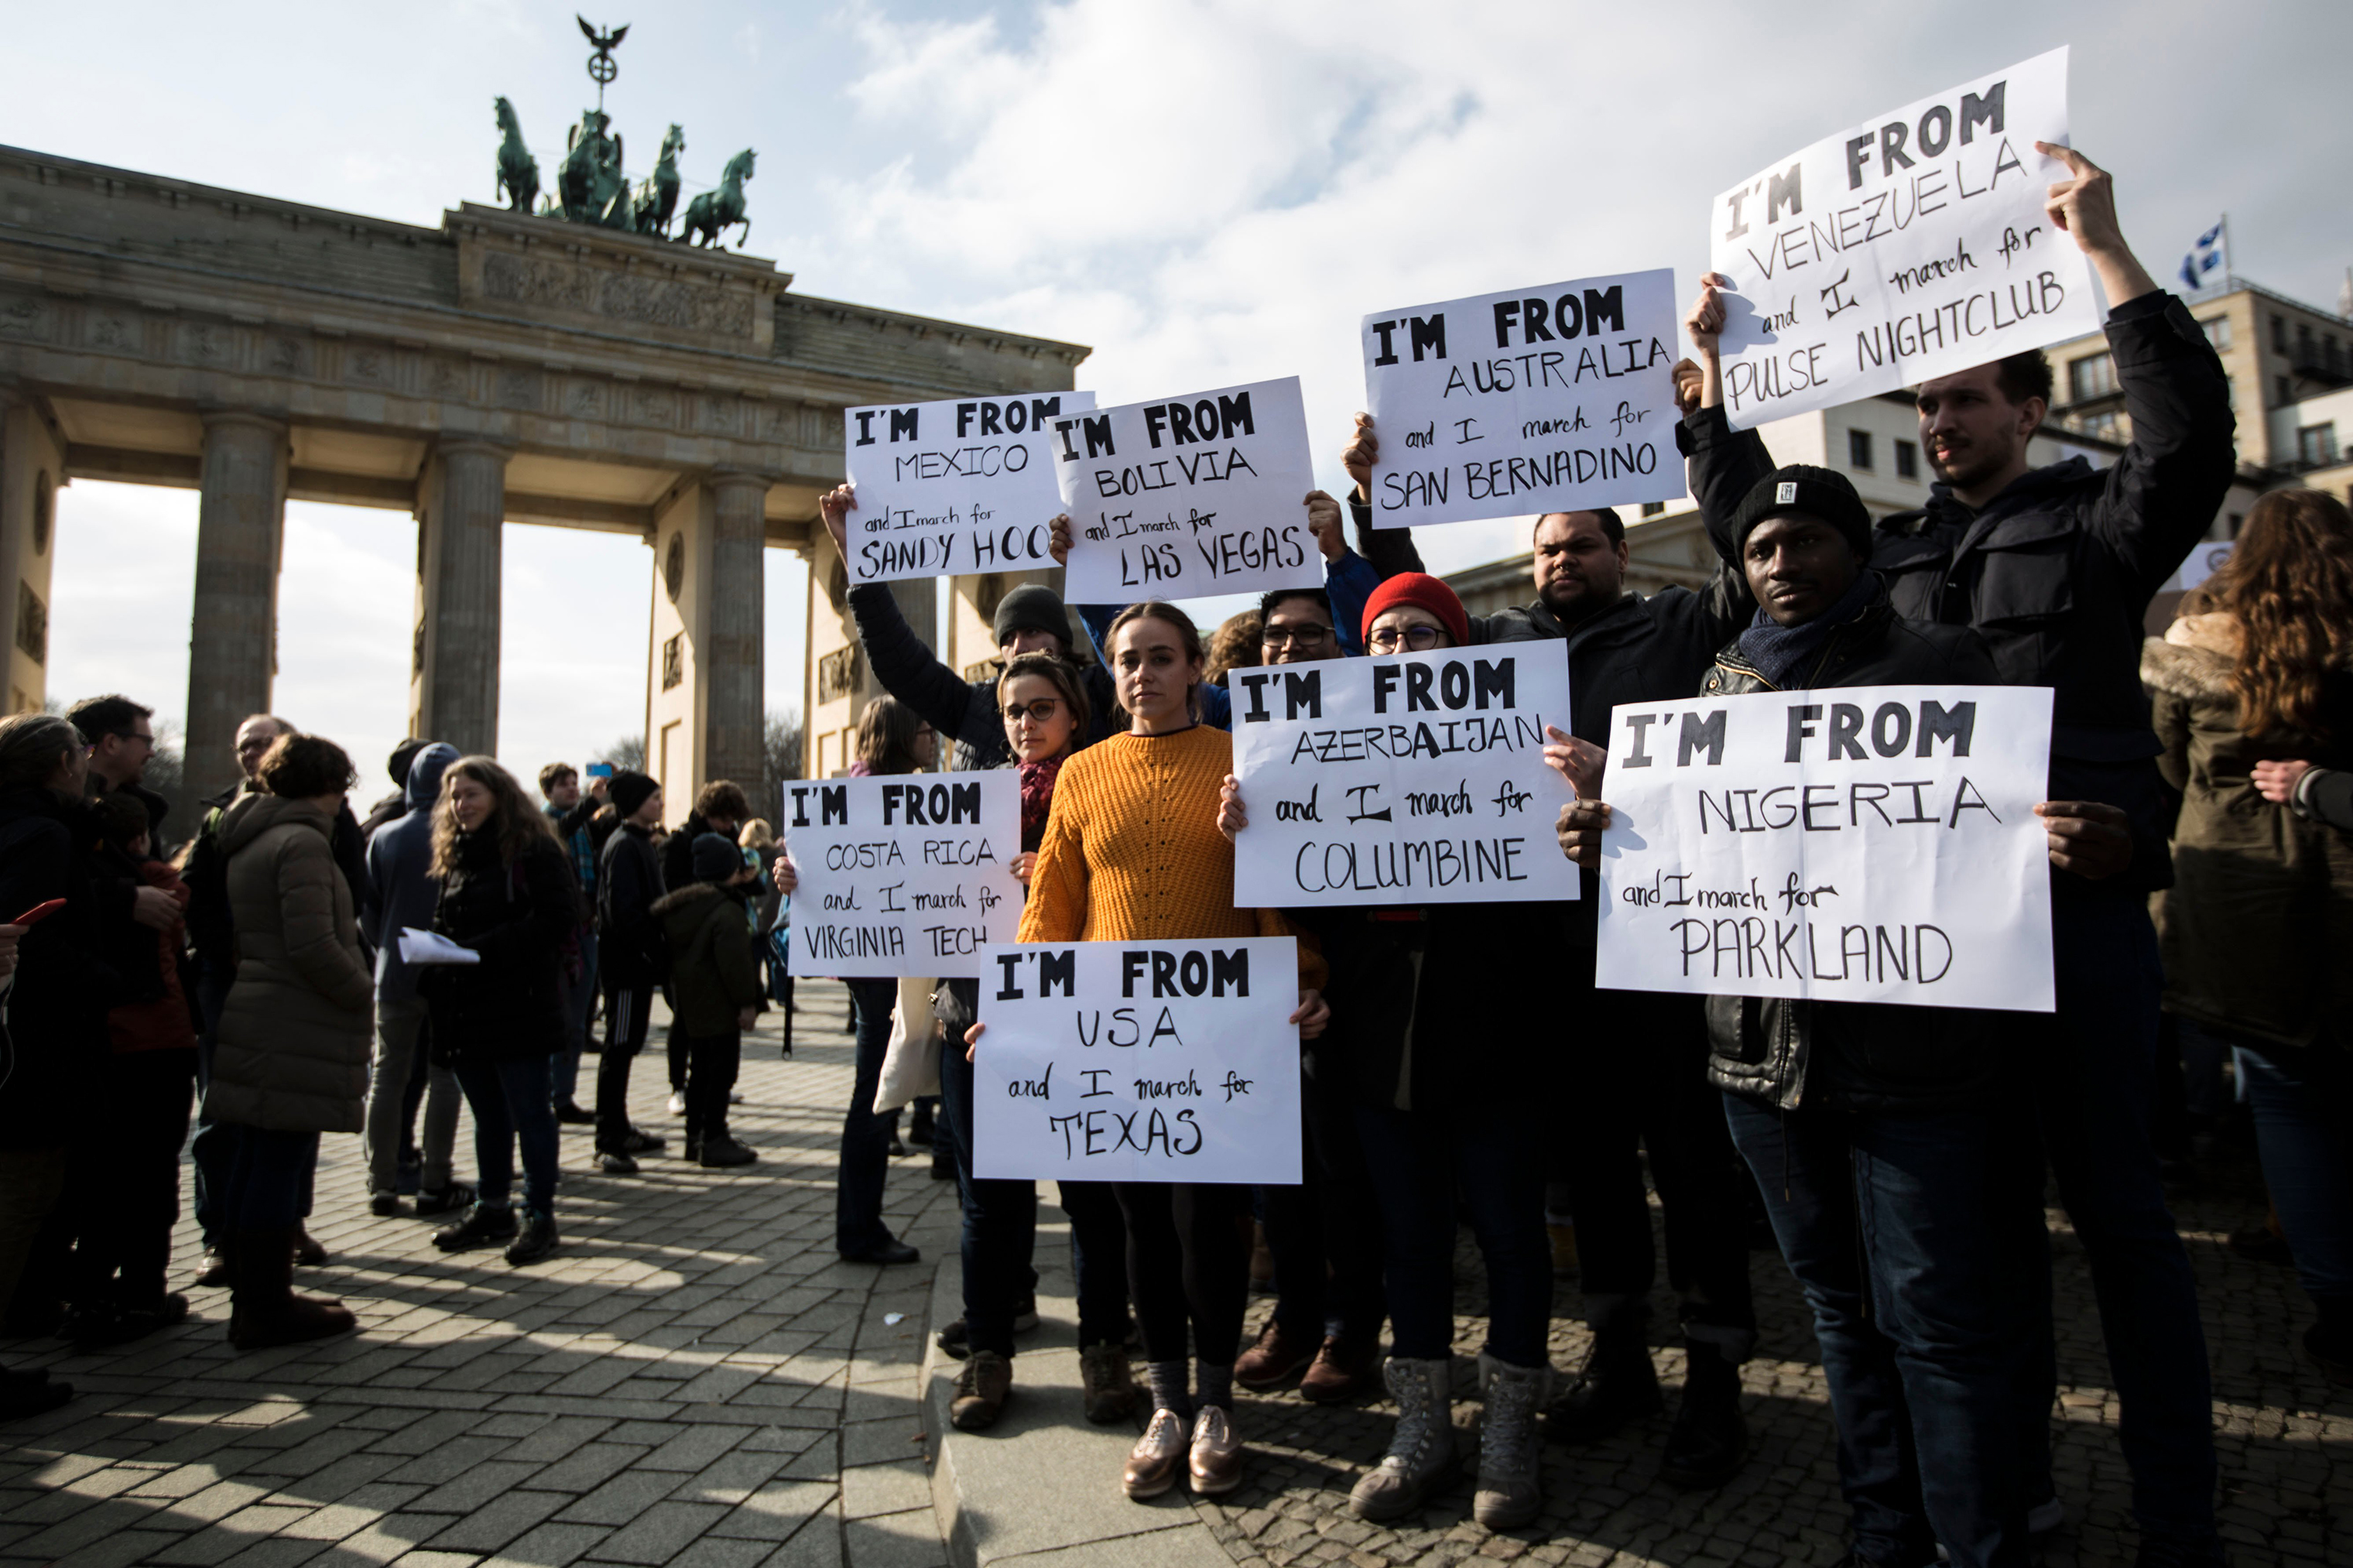 About 500 people gathered at Brandenburg Gate in the German capital to honor the victims of the Parkland massacre and call for stronger gun control in the United States.